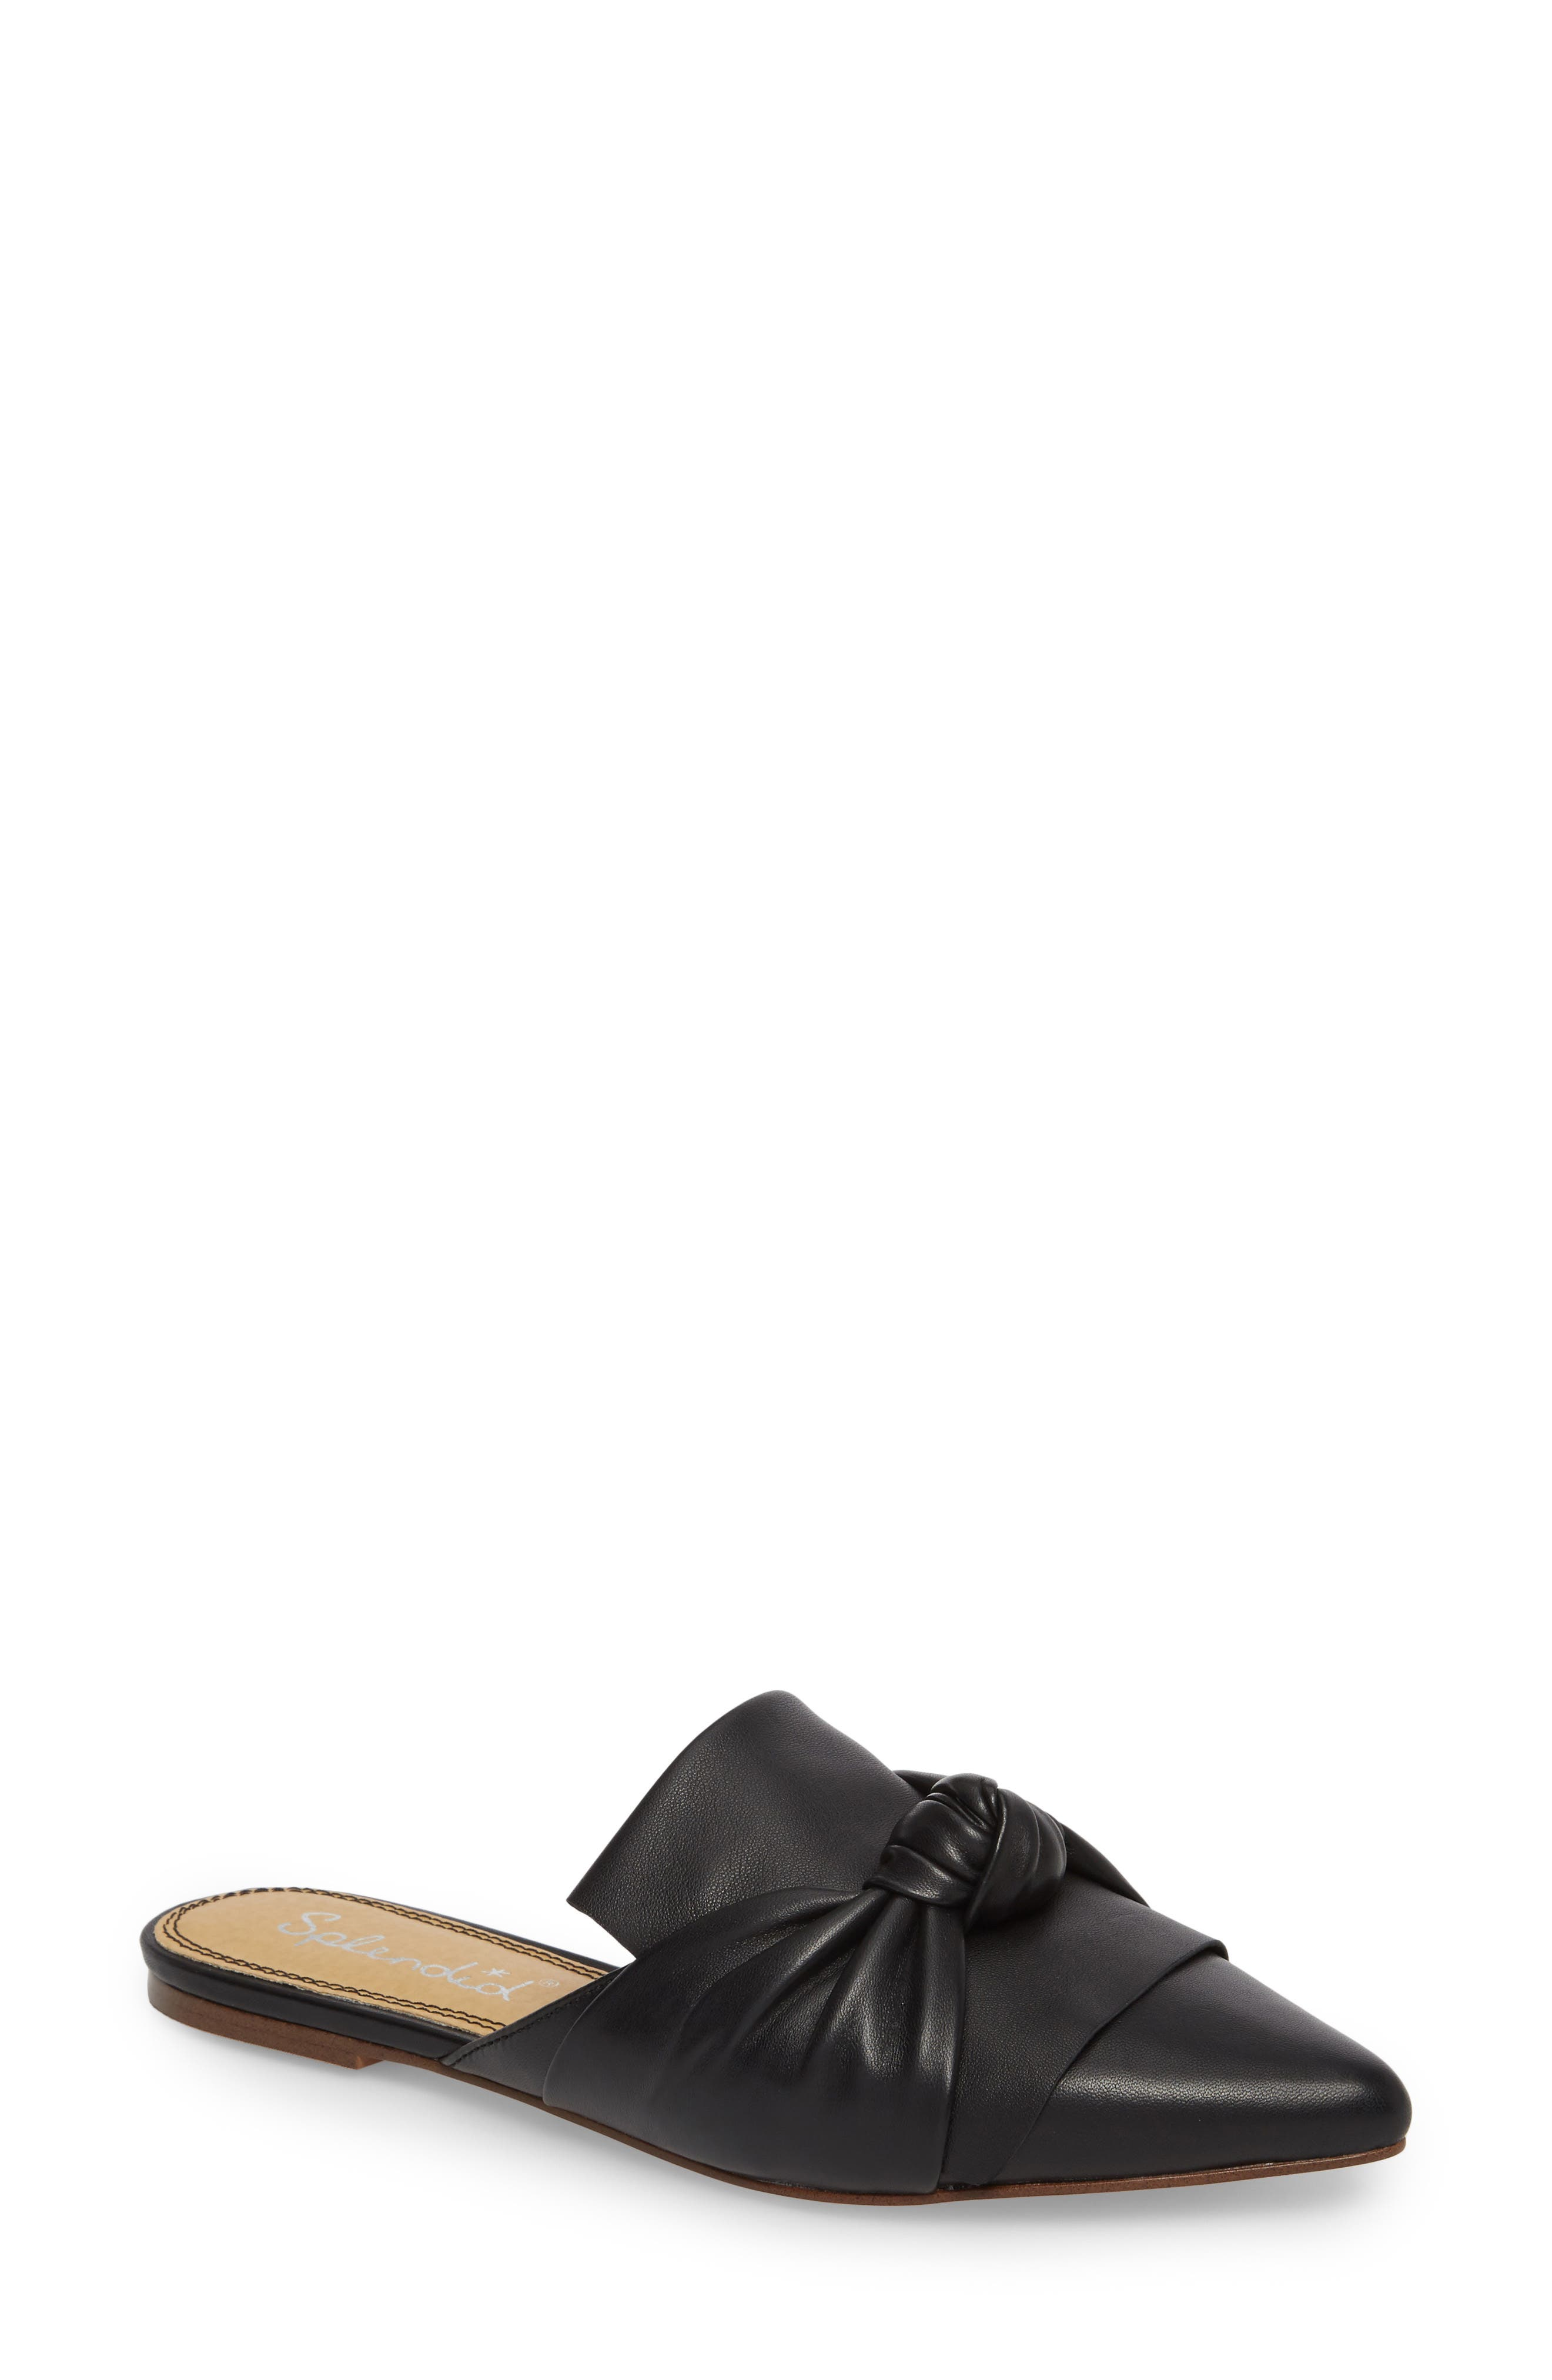 Bassett Knotted Pointy Toe Mule,                         Main,                         color,